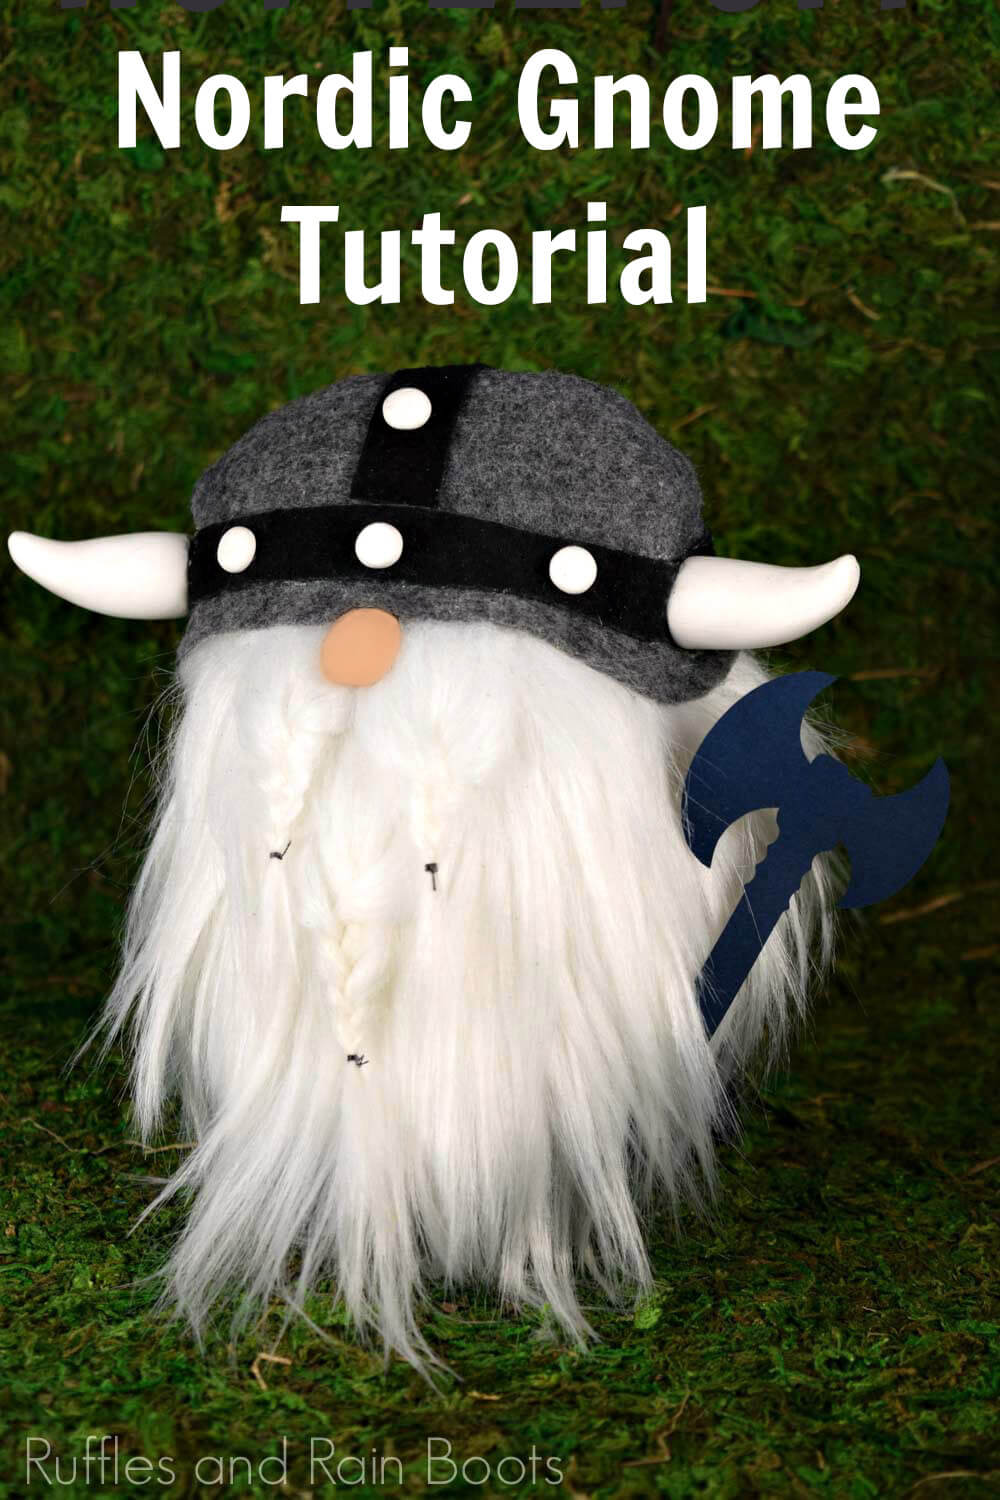 Viking gnome on green moss background with text which reads Nordic Gnome Tutorial